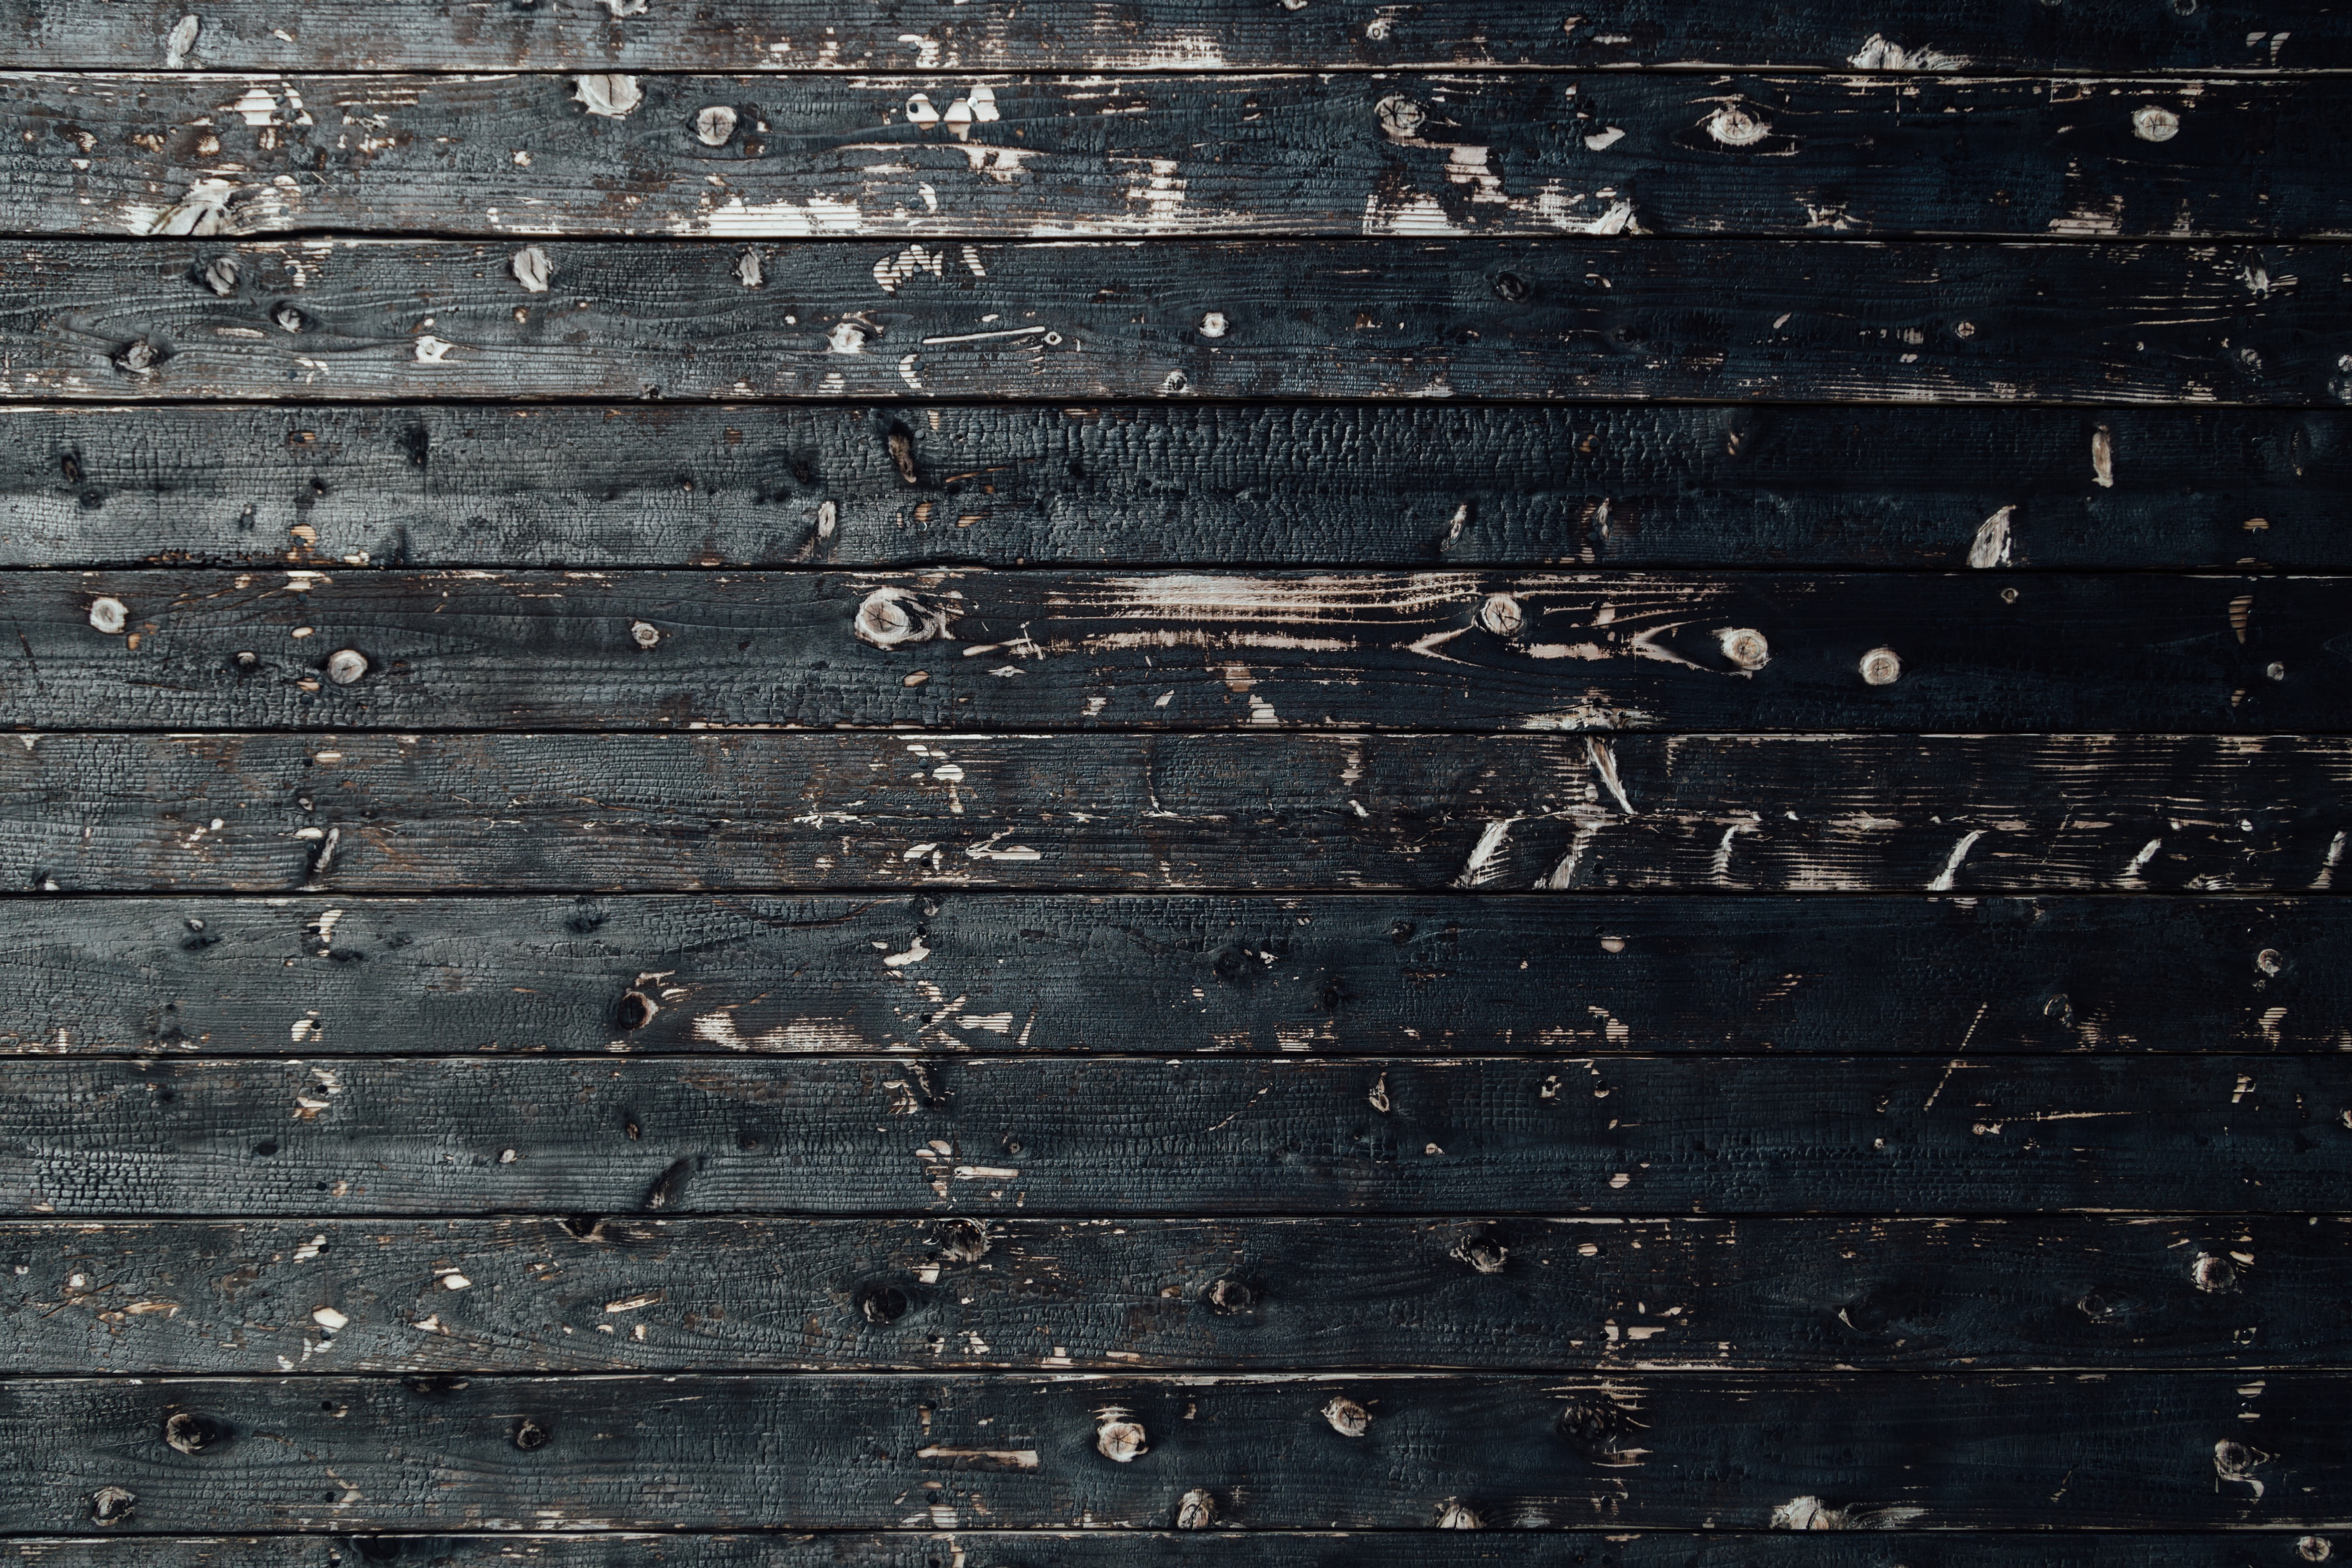 94990 download wallpaper Textures, Texture, Planks, Board, Surface, Wood, Wooden, Stripes, Streaks screensavers and pictures for free